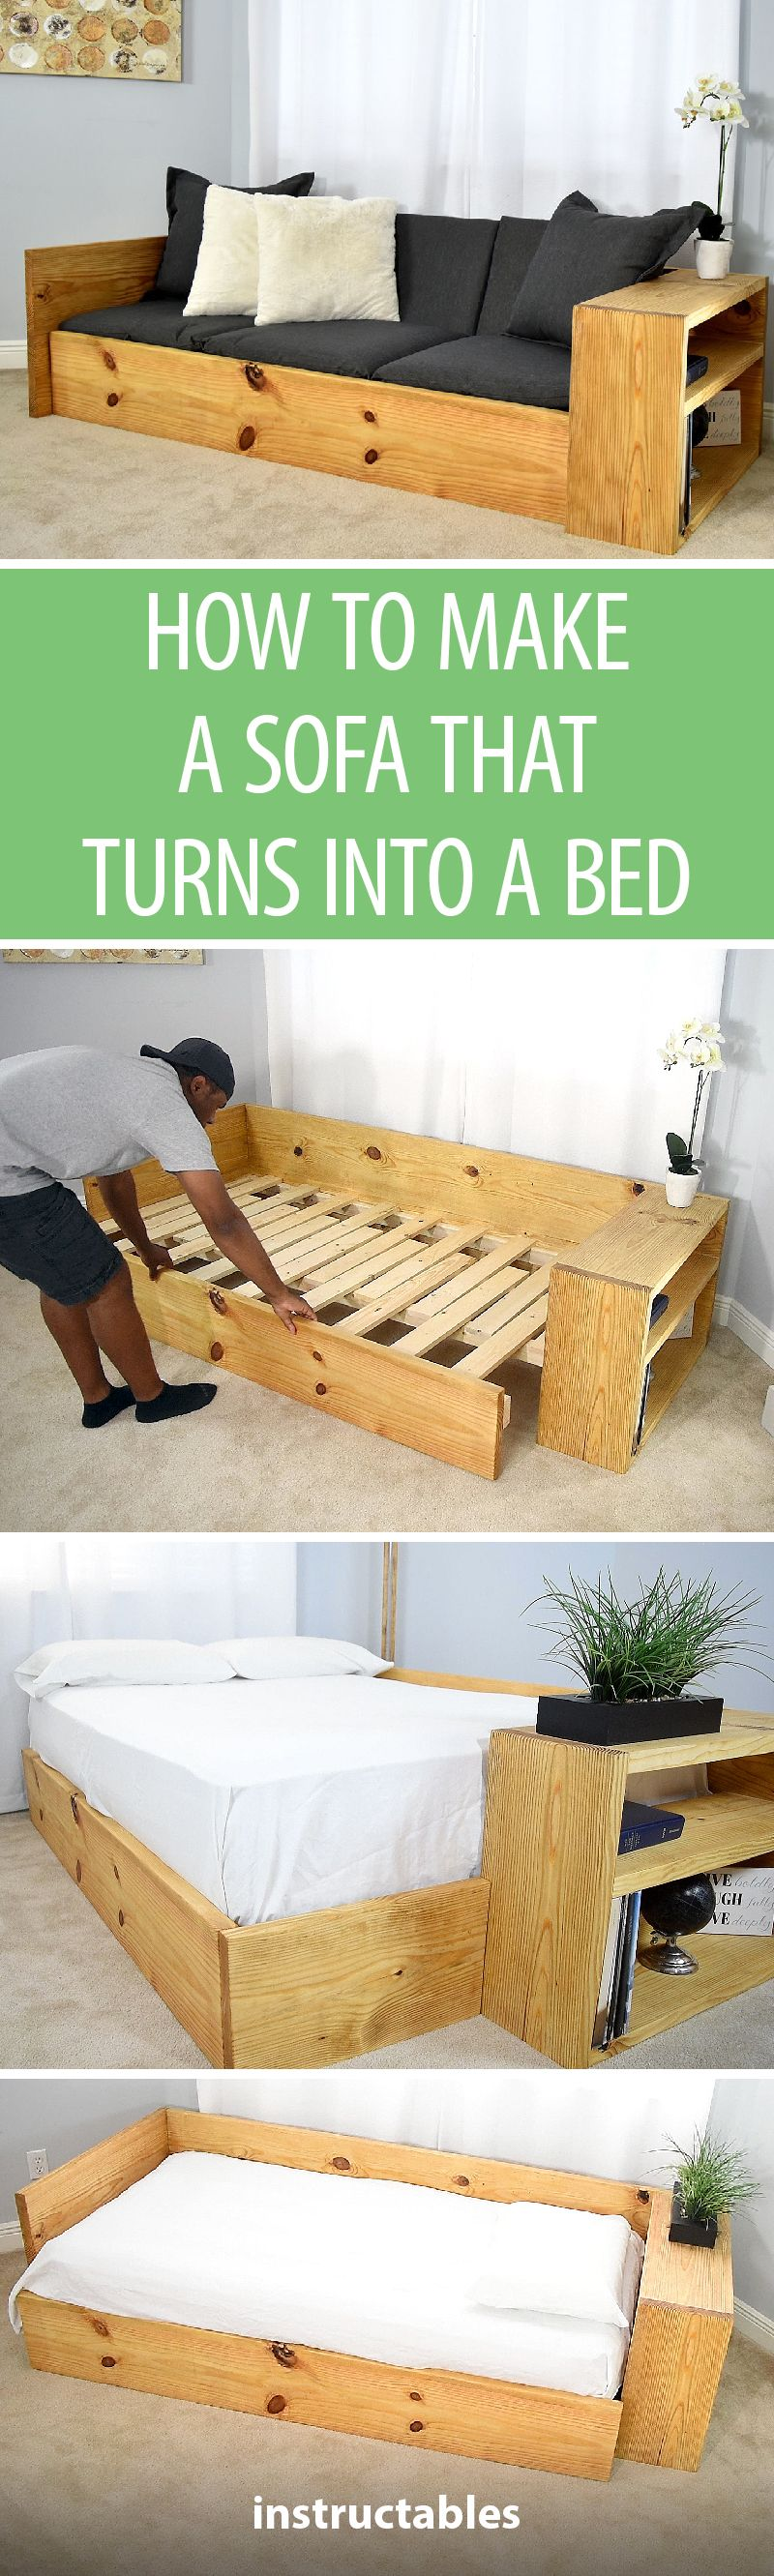 Stapelbett Jabe Dop How To Make A Sofa That Turns Into A Bed Woodworking